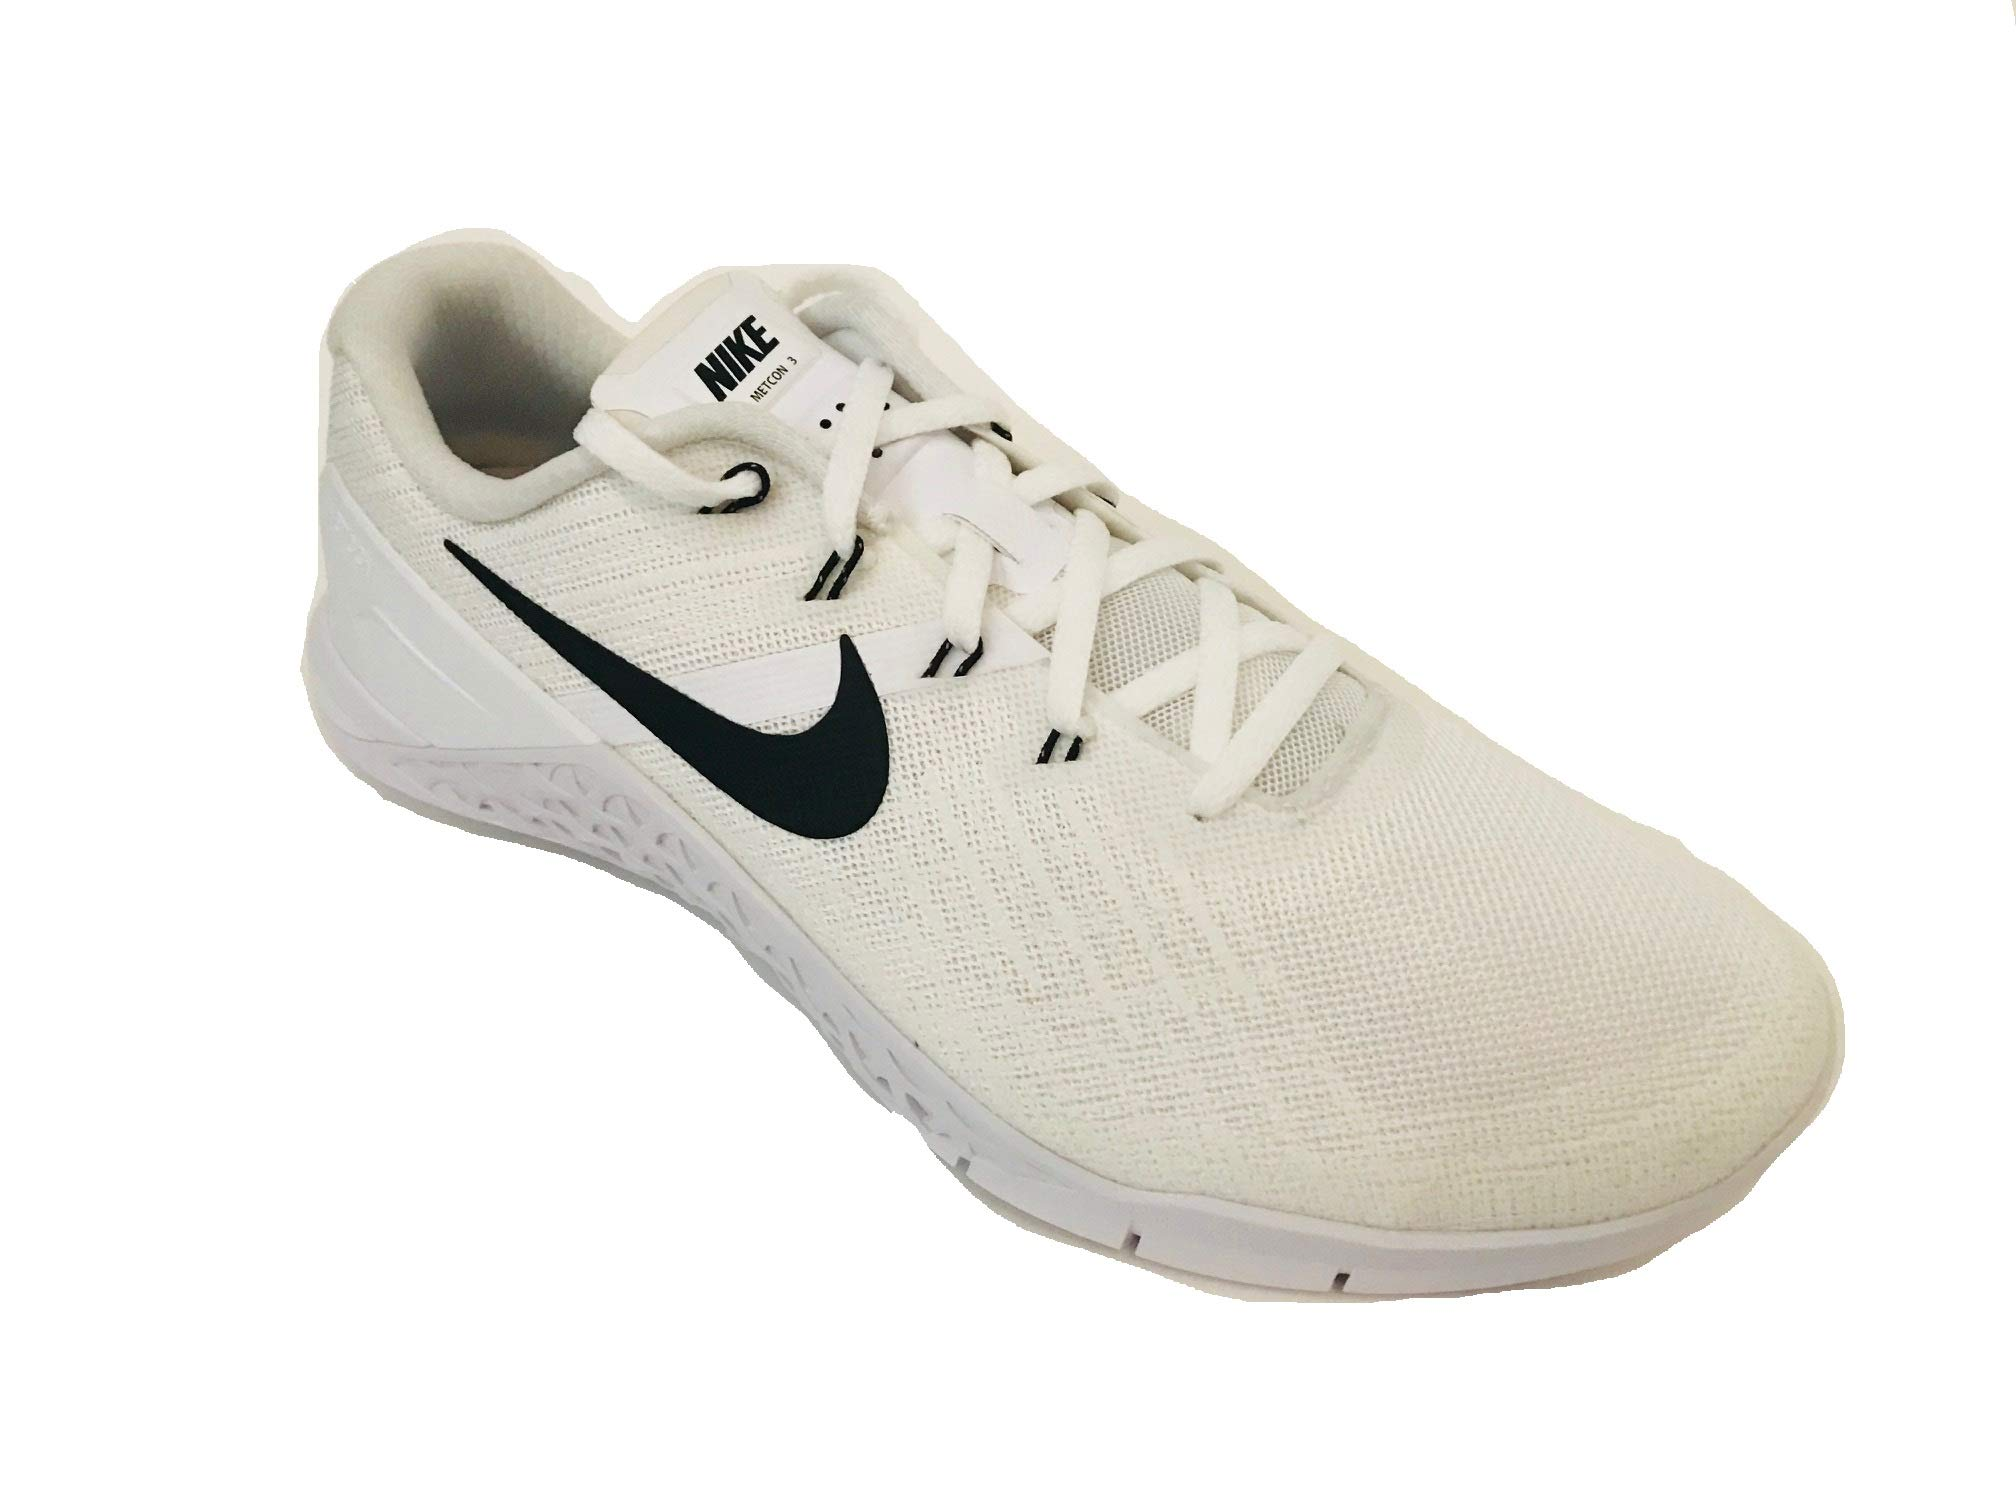 d5fd9827c65768 Galleon - NIKE Men s Metcon 3 TB Training Shoes White Black Size 11 D(M) US